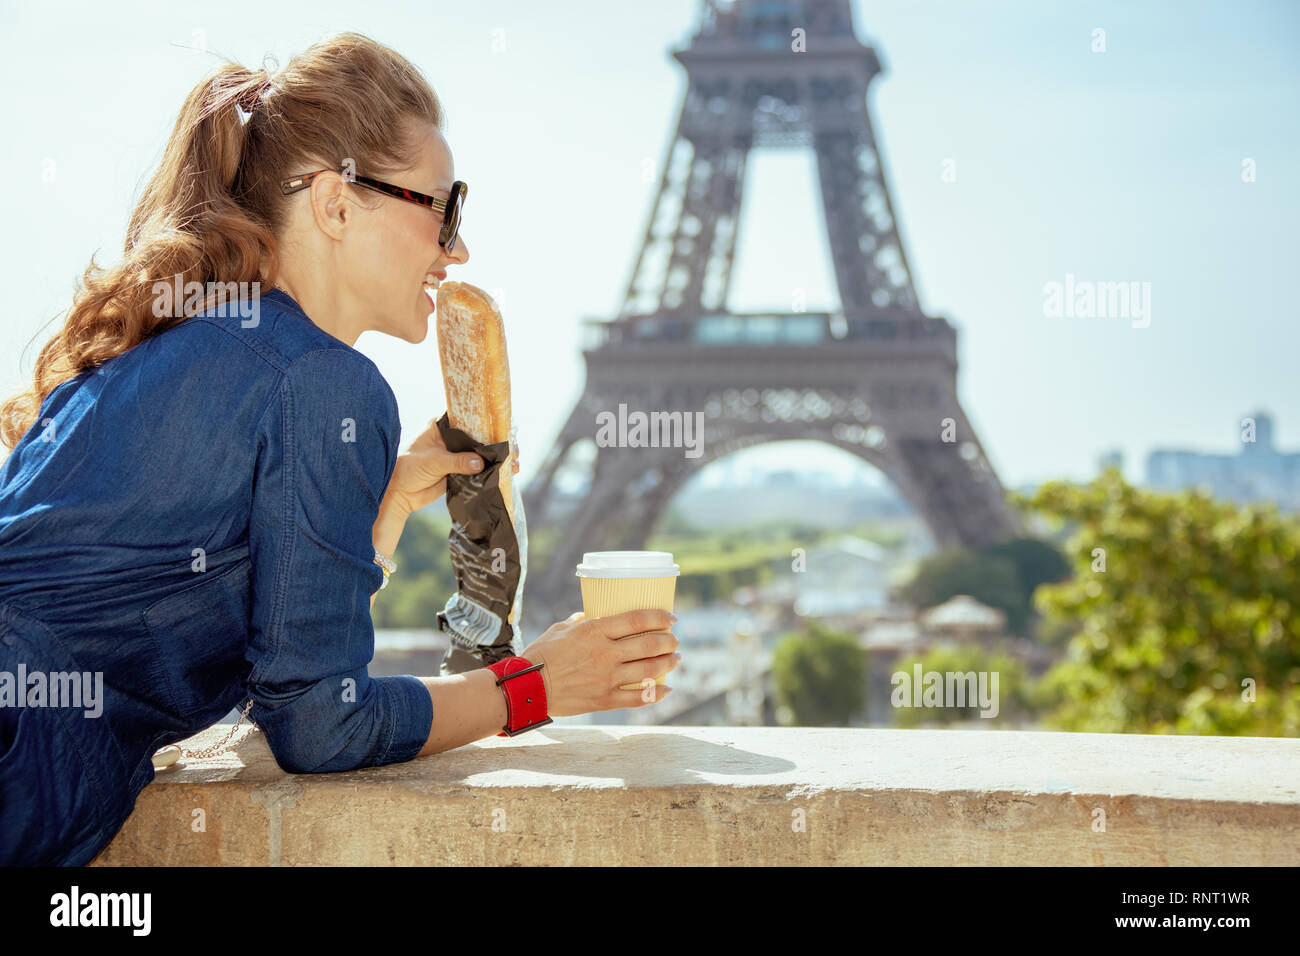 smiling elegant traveller woman in blue jeans overall with coffee cup eating baguette having excursion against clear view of the Eiffel Tower in Paris Stock Photo